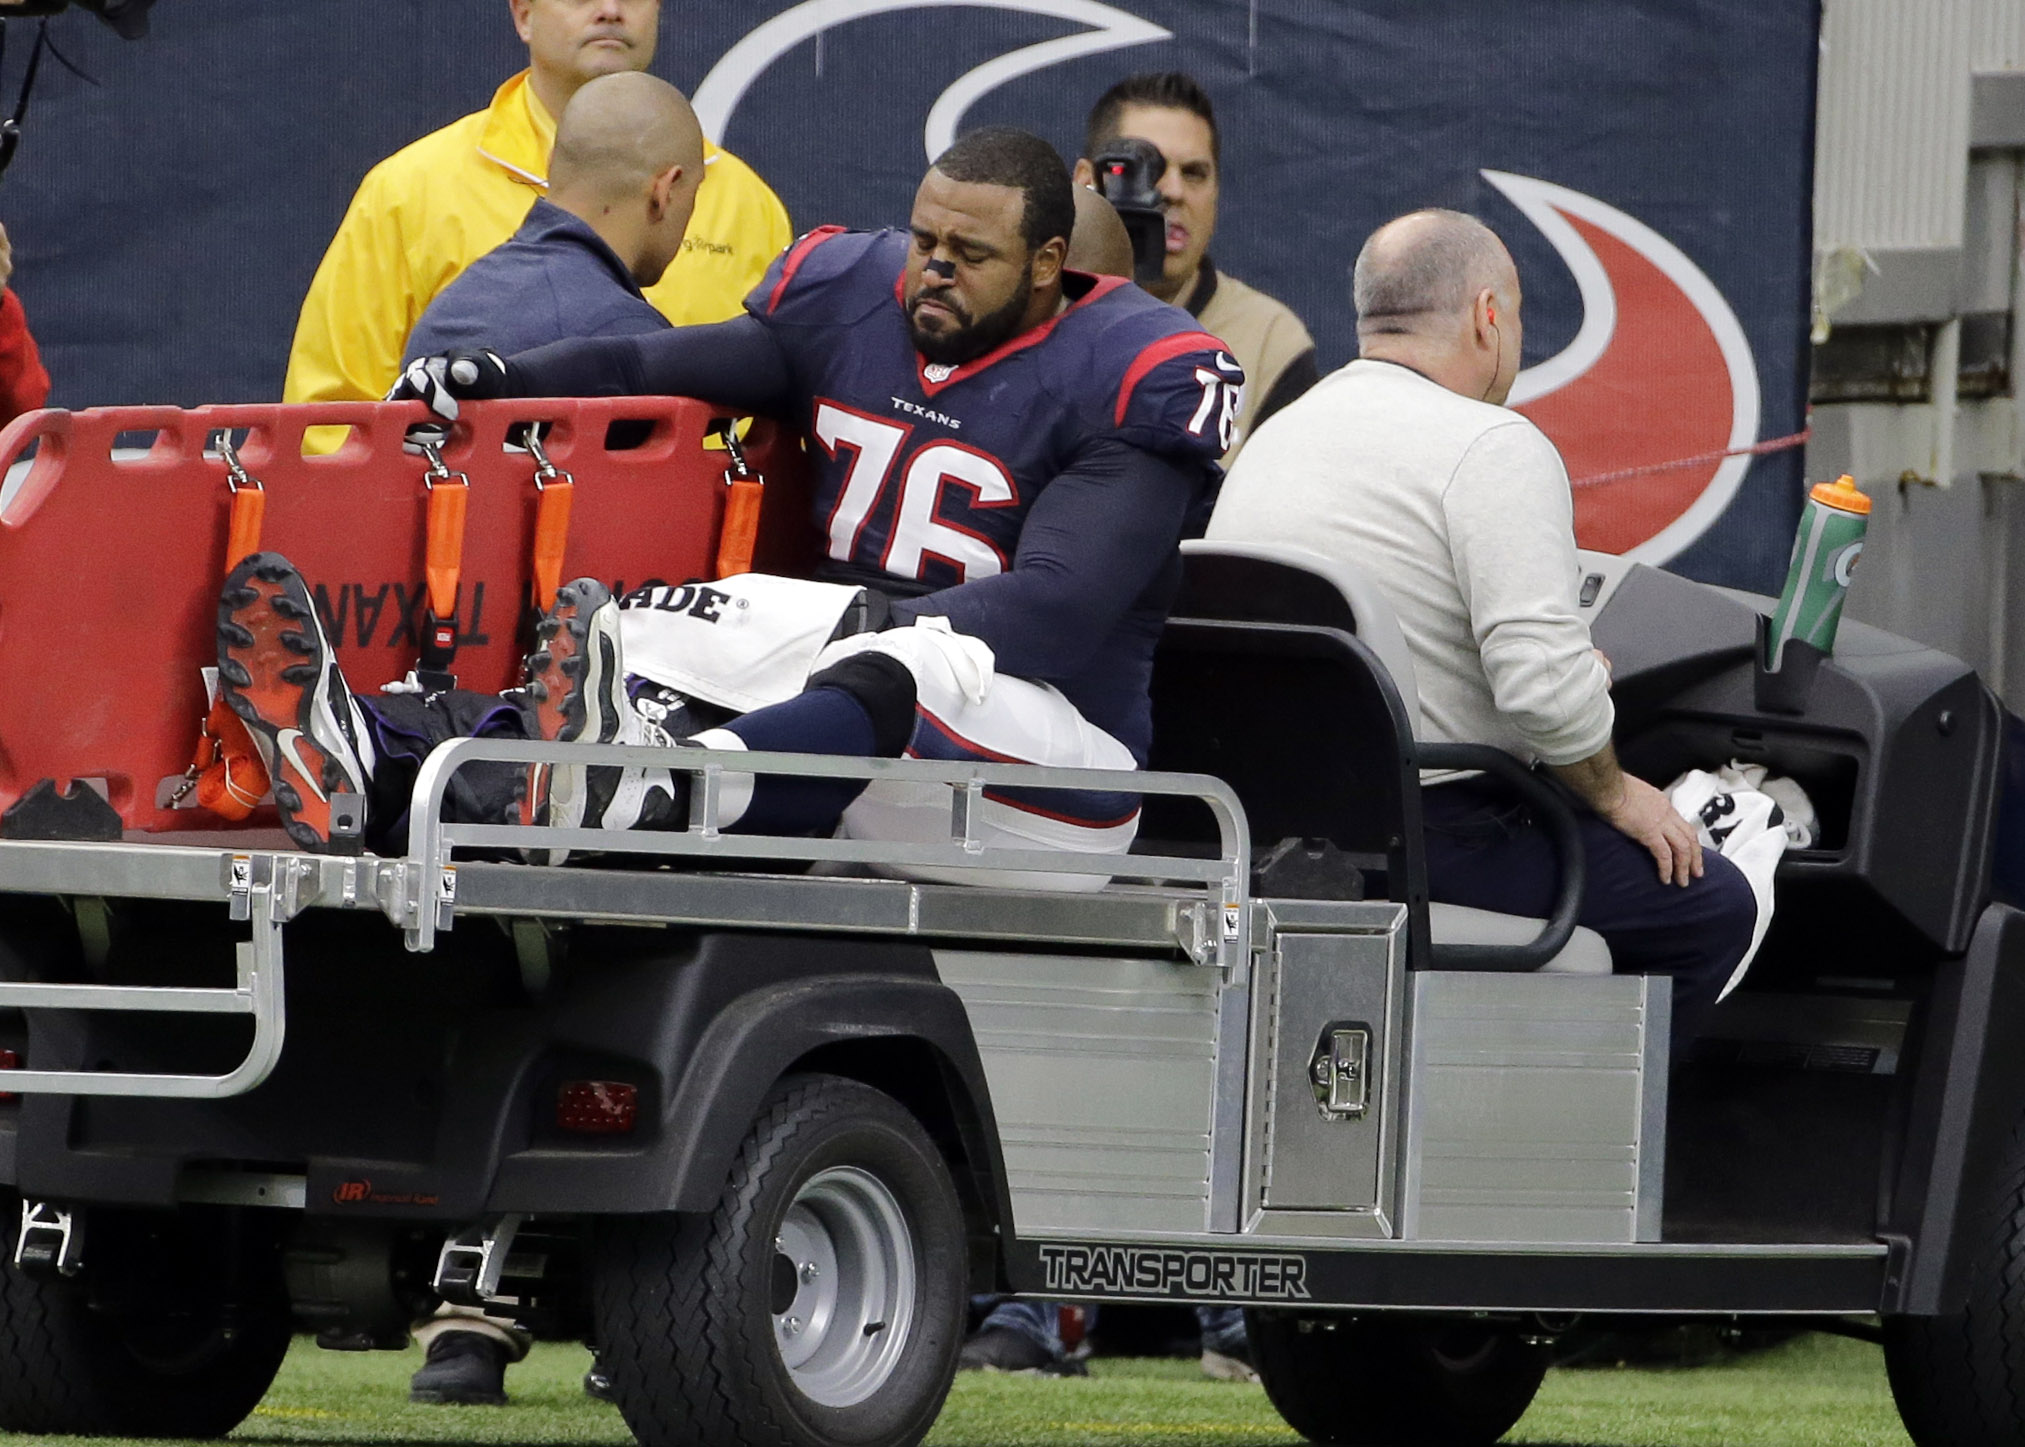 Houston Texans tackle Duane Brown (76) is carted off the field after he was injured during the first half an NFL football game against the Jacksonville Jaguars, Sunday, Jan. 3, 2016, in Houston. (AP Photo/David J. Phillip)